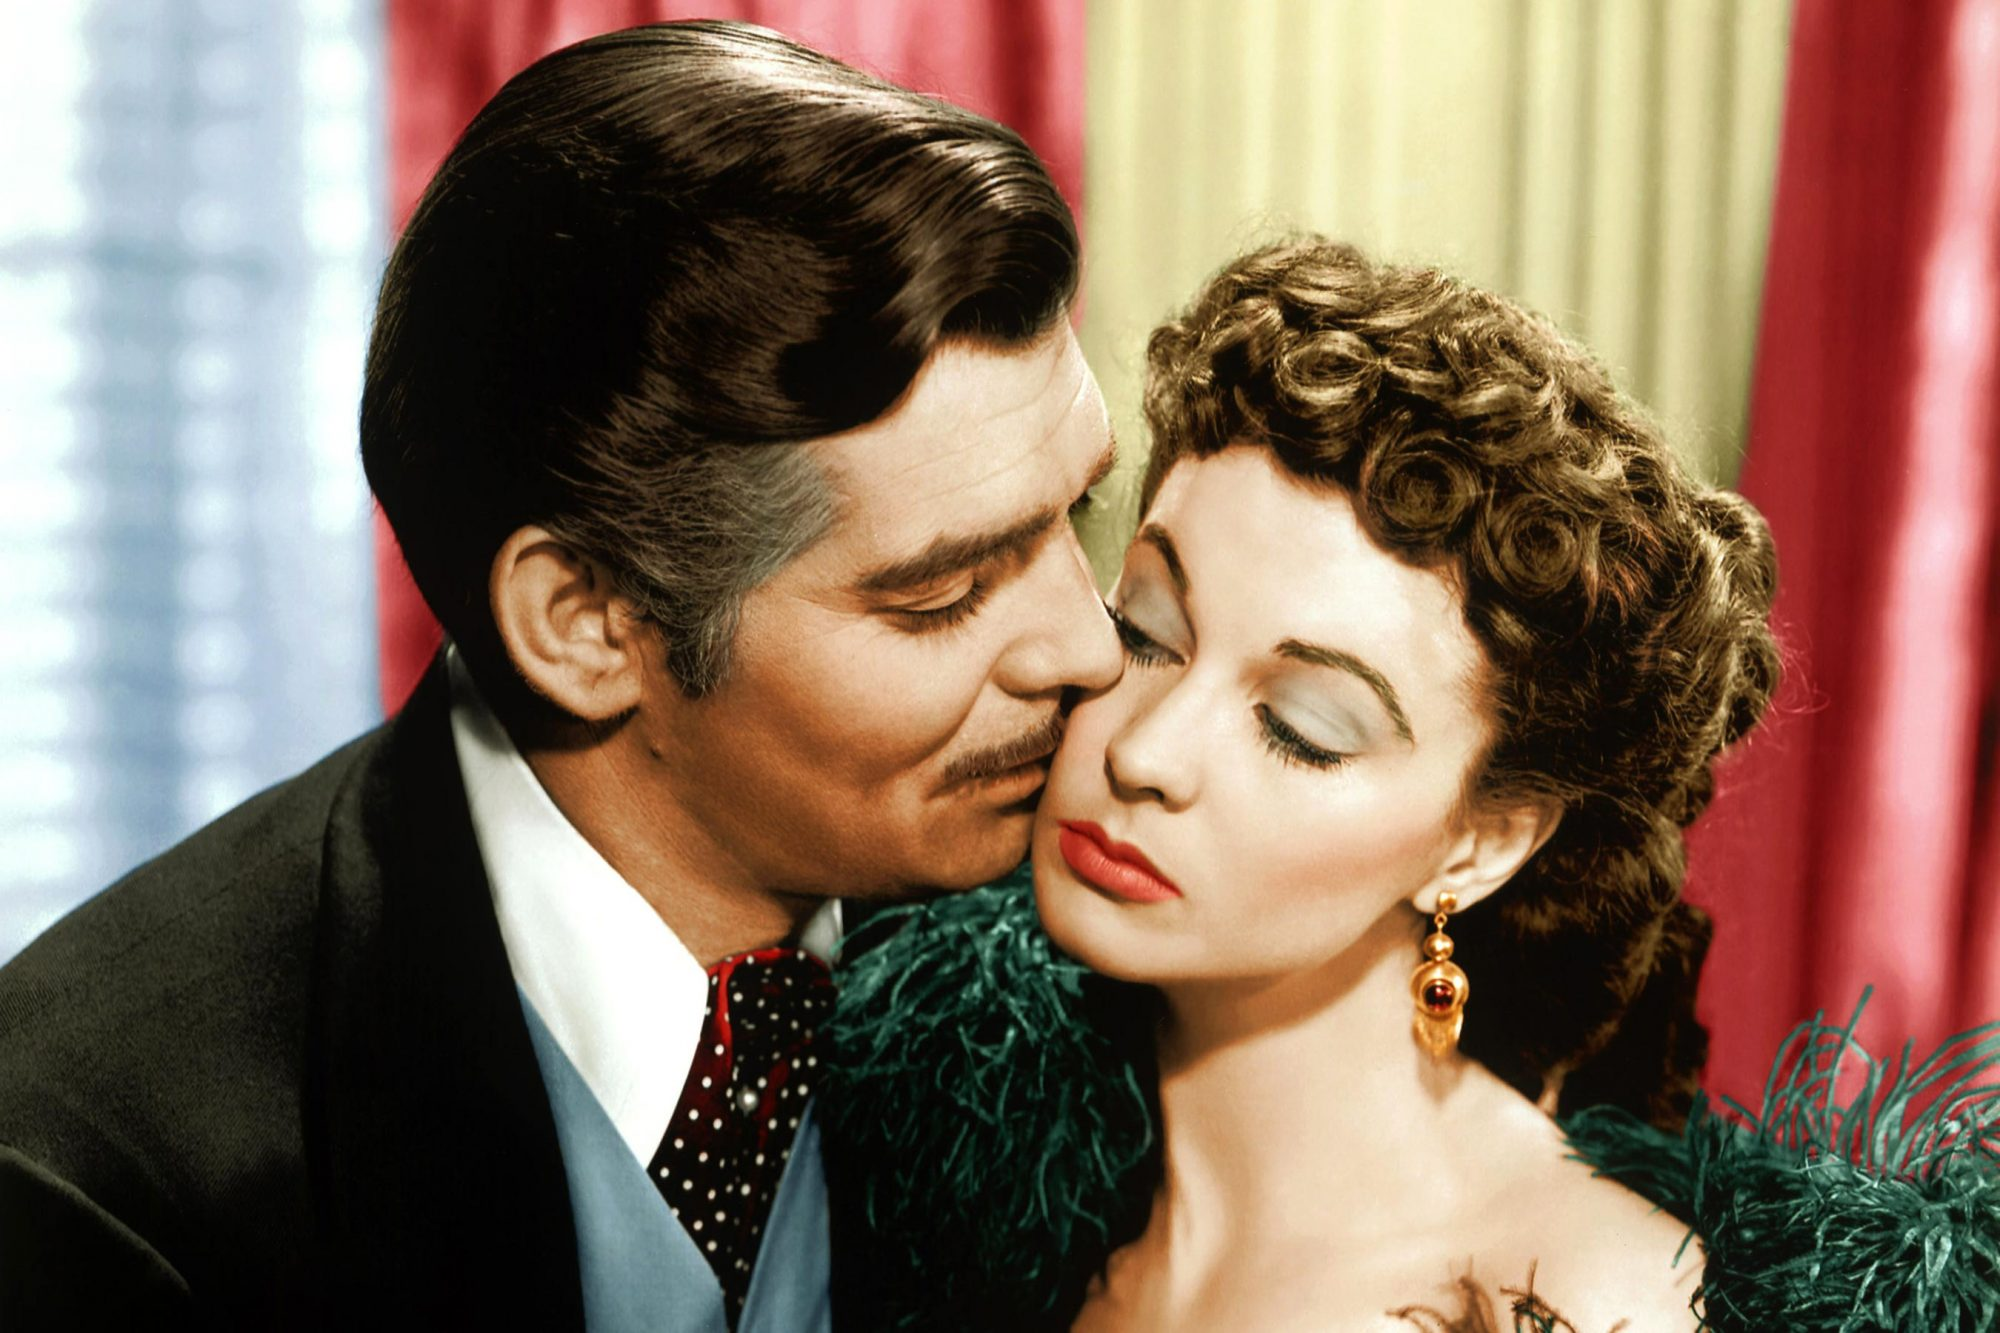 Gone With the Wind returning to theaters for 80th anniversary m8dgowi_ec028_h